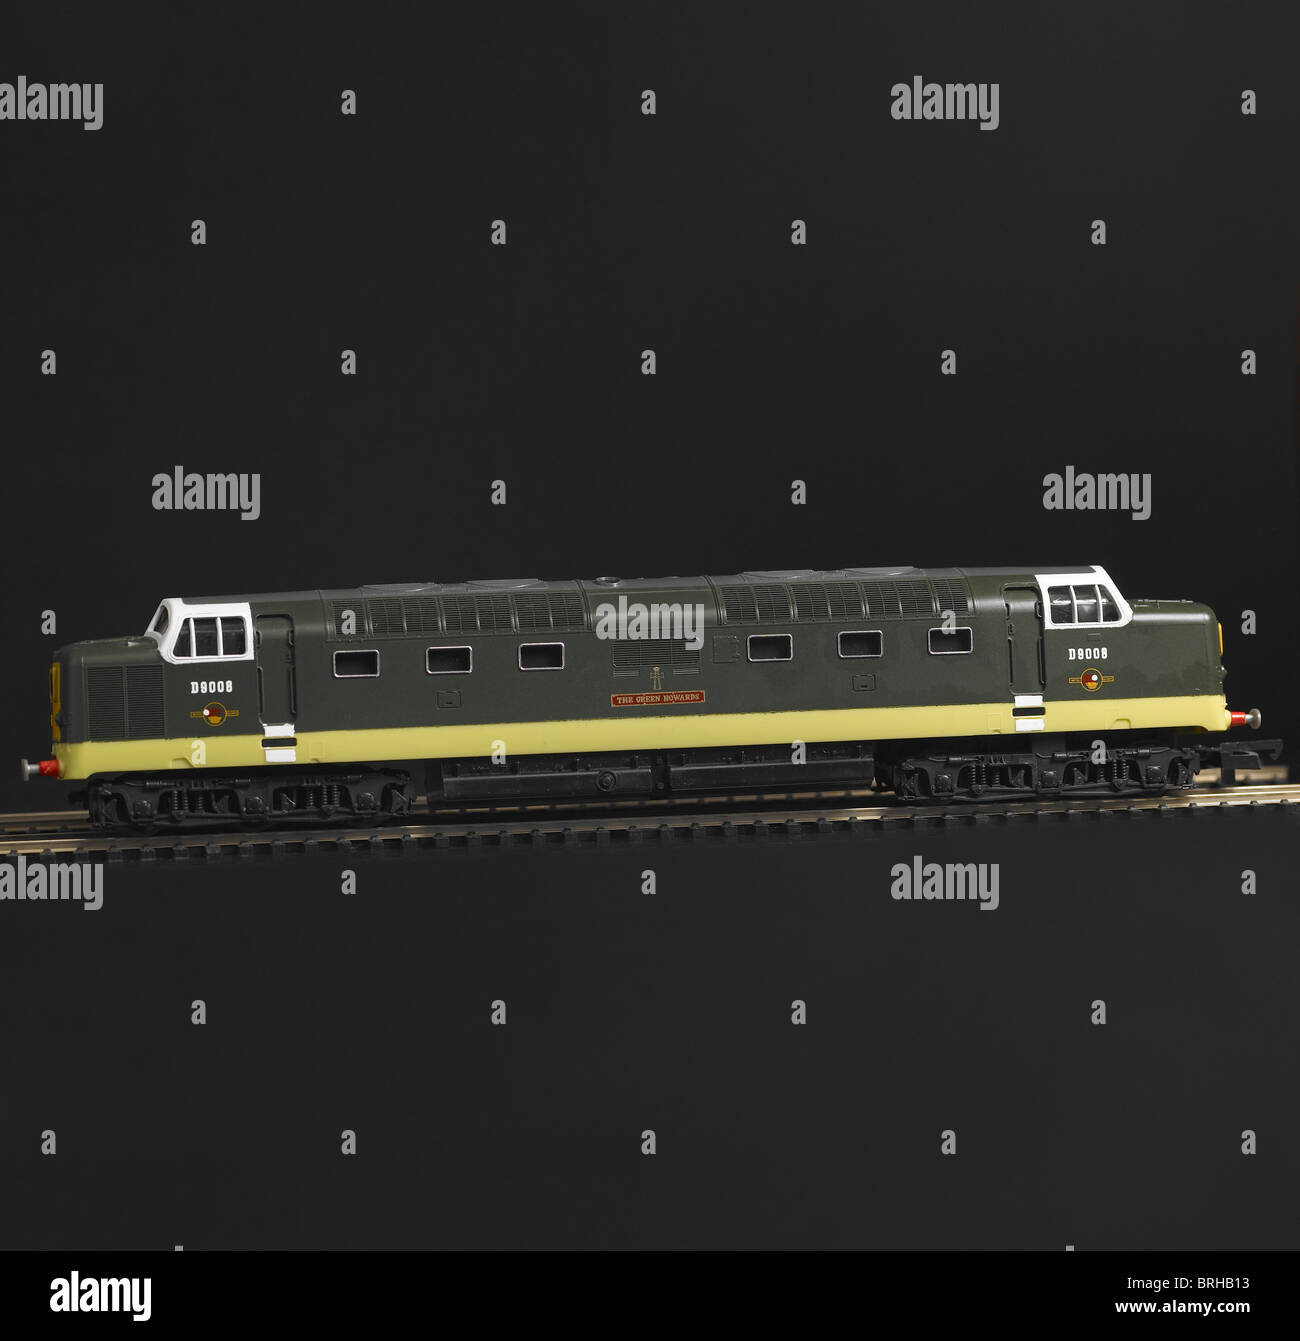 Class 55 Diesel Locomotive, BR Two Tone Green - Stock Image